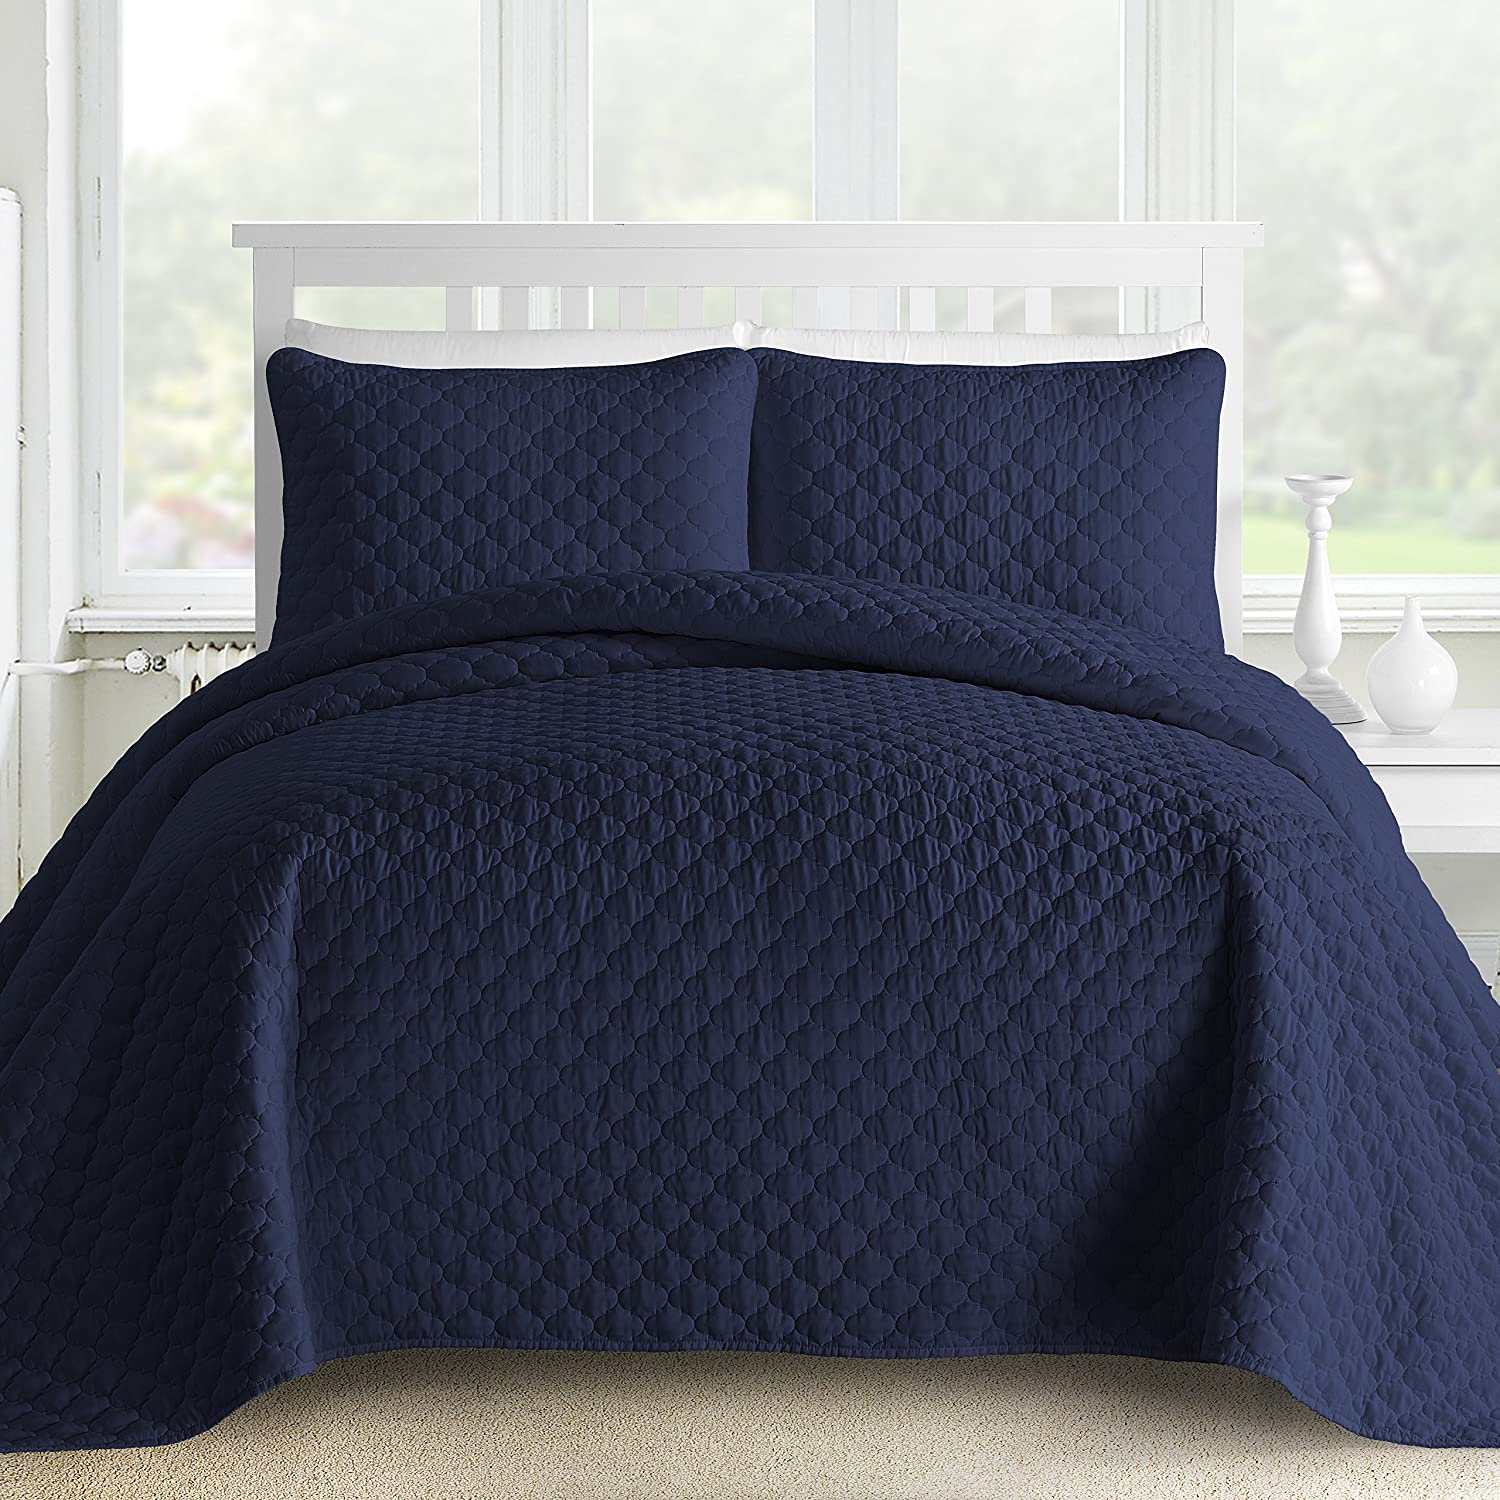 Comfy Bedding 3-Piece Bedspread Coverlet Set Oversized and Prewashed Lantern Ogee Quilted, King/Cal King Navy Blue